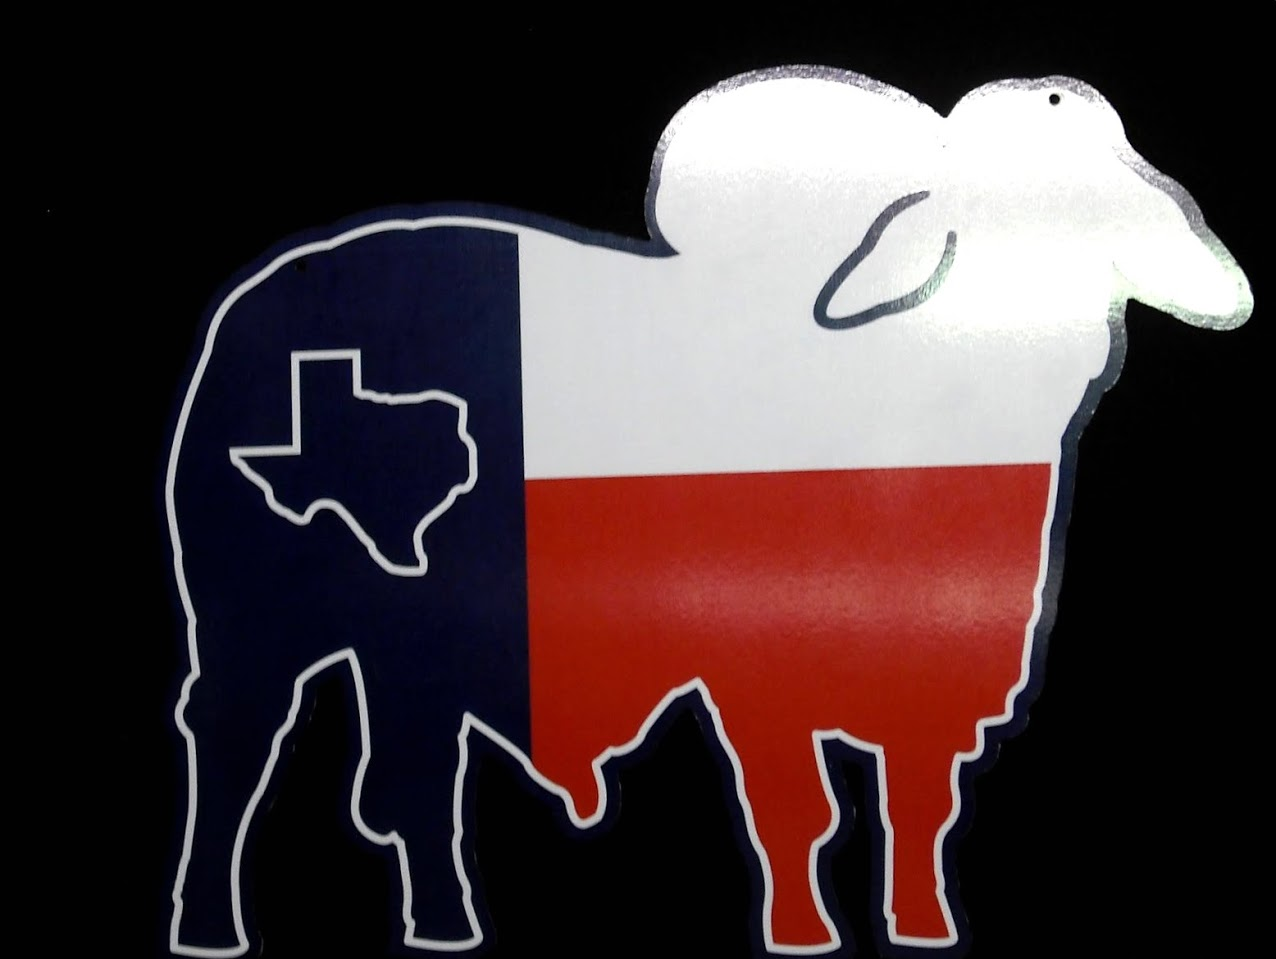 Red, white, and blue PVC Plastic Indoor Wall Sign cut in the shape of a cow with a graphic of the state of Texas